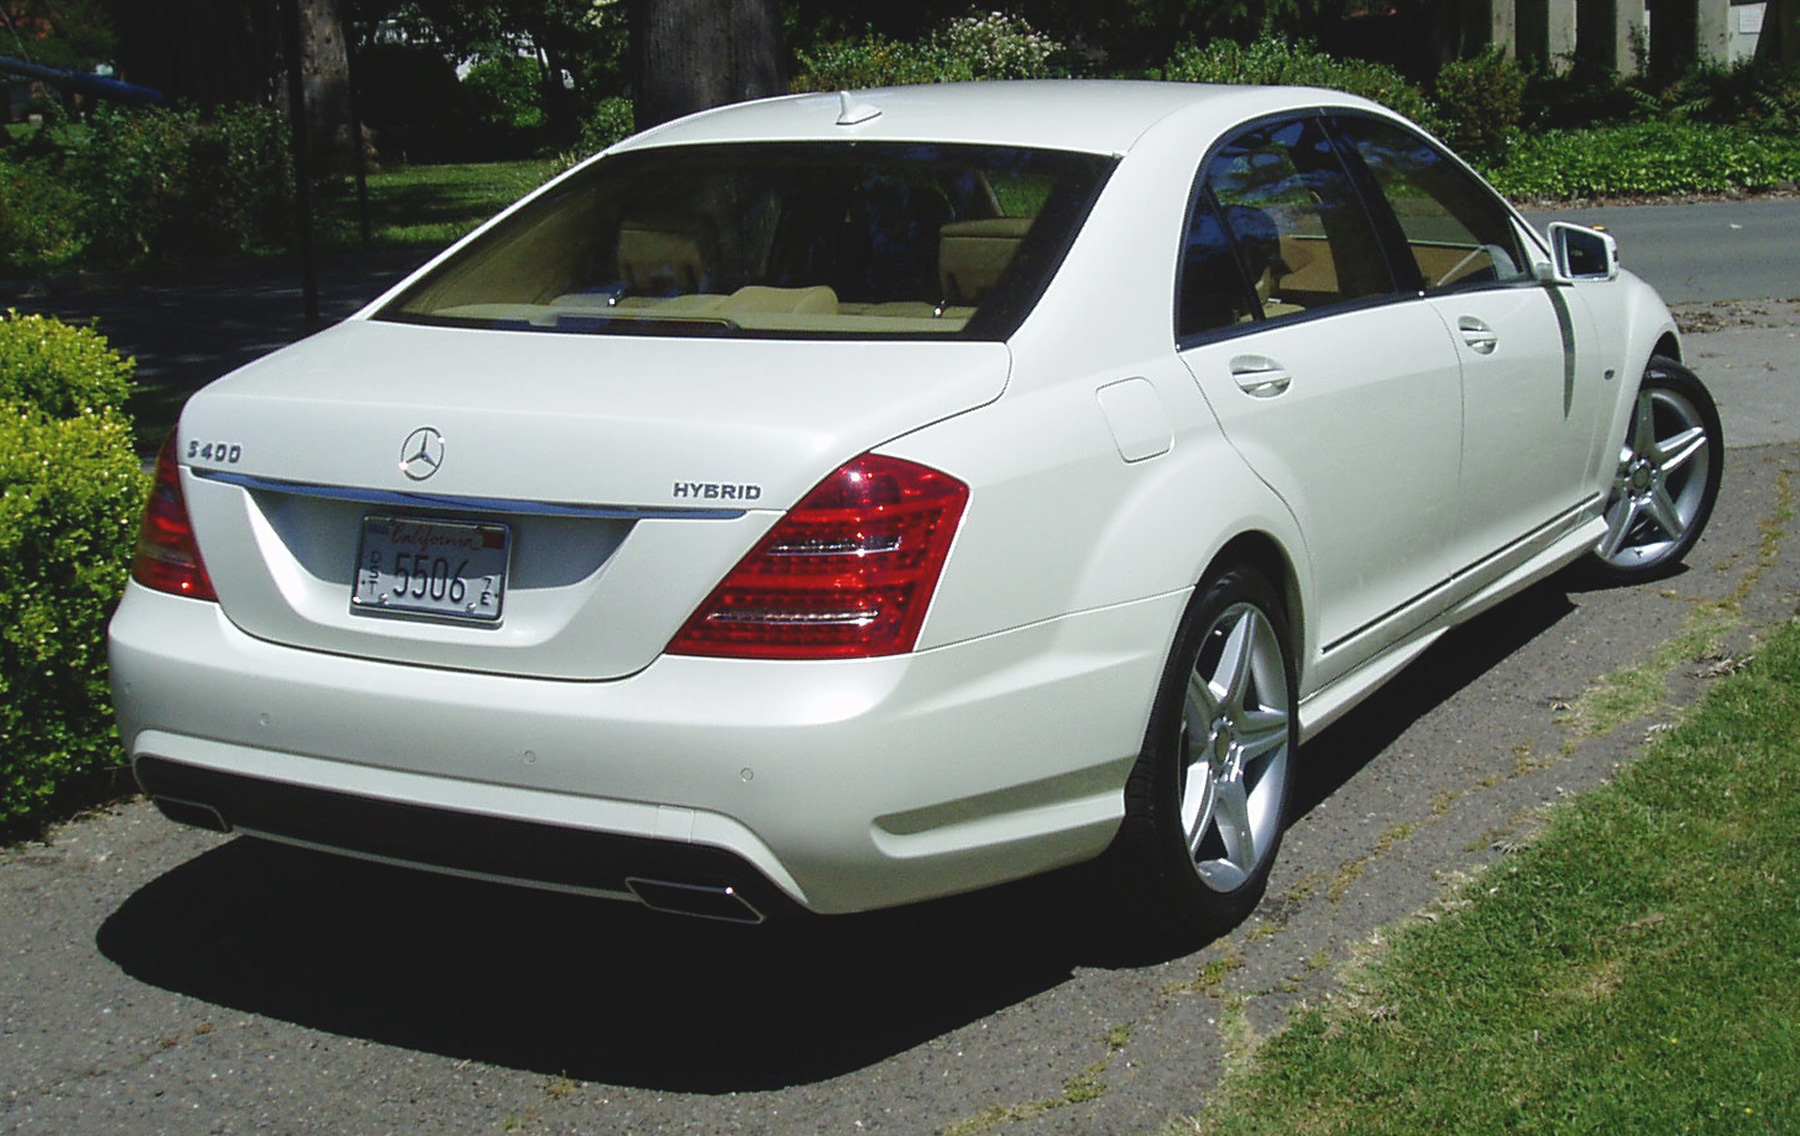 Summary The Mercedes Benz S400